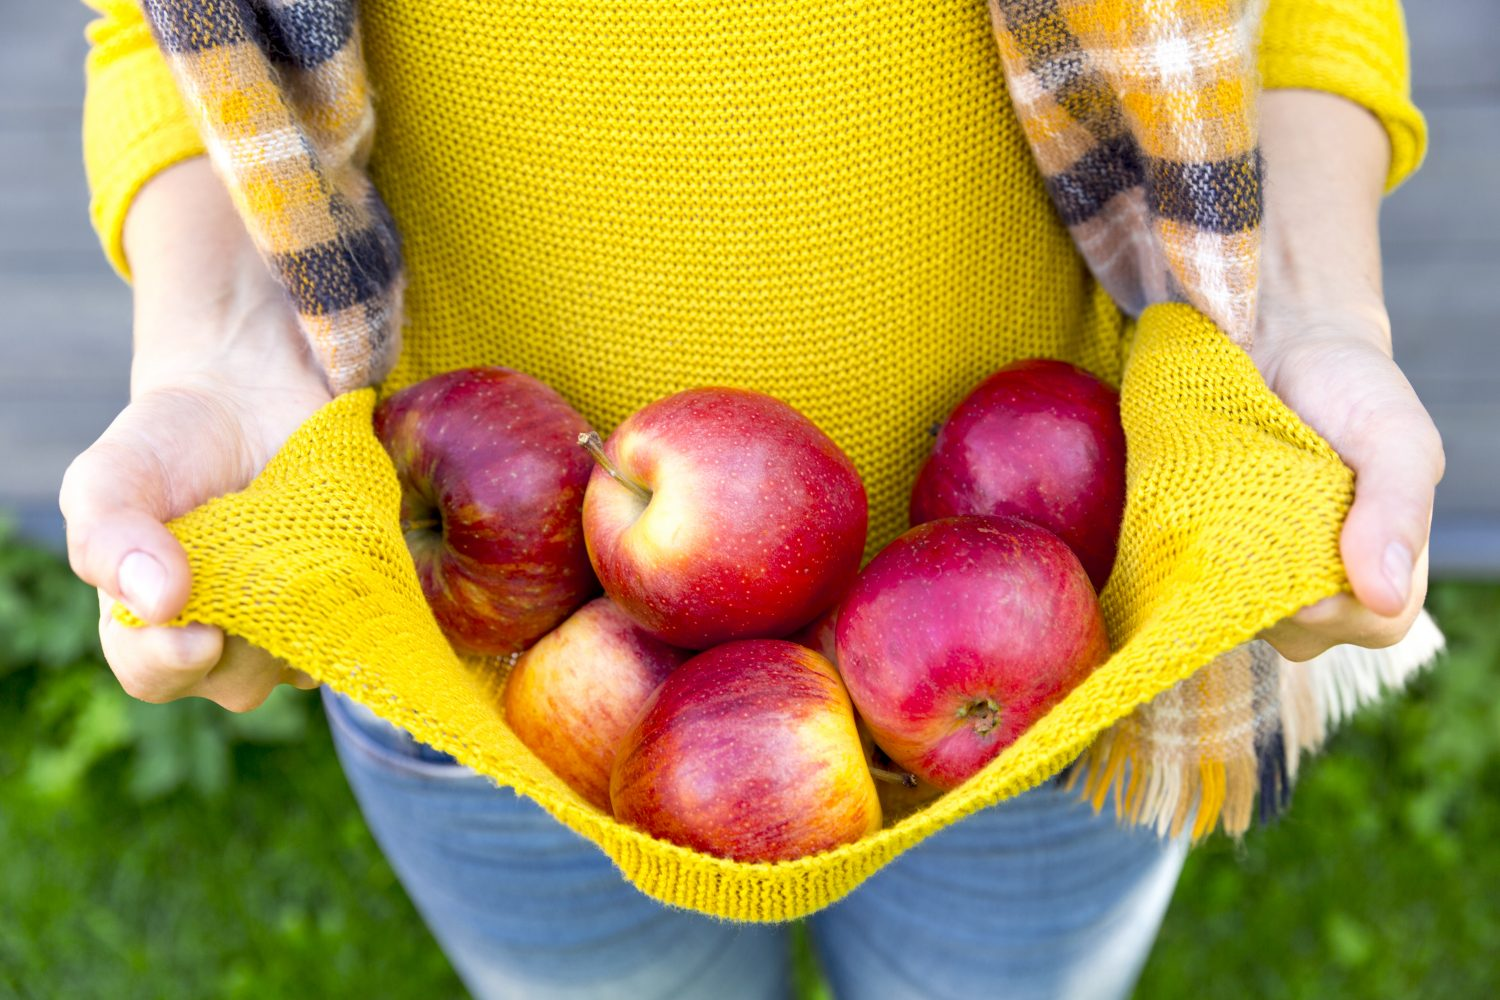 Apples can help treat vaginal dryness